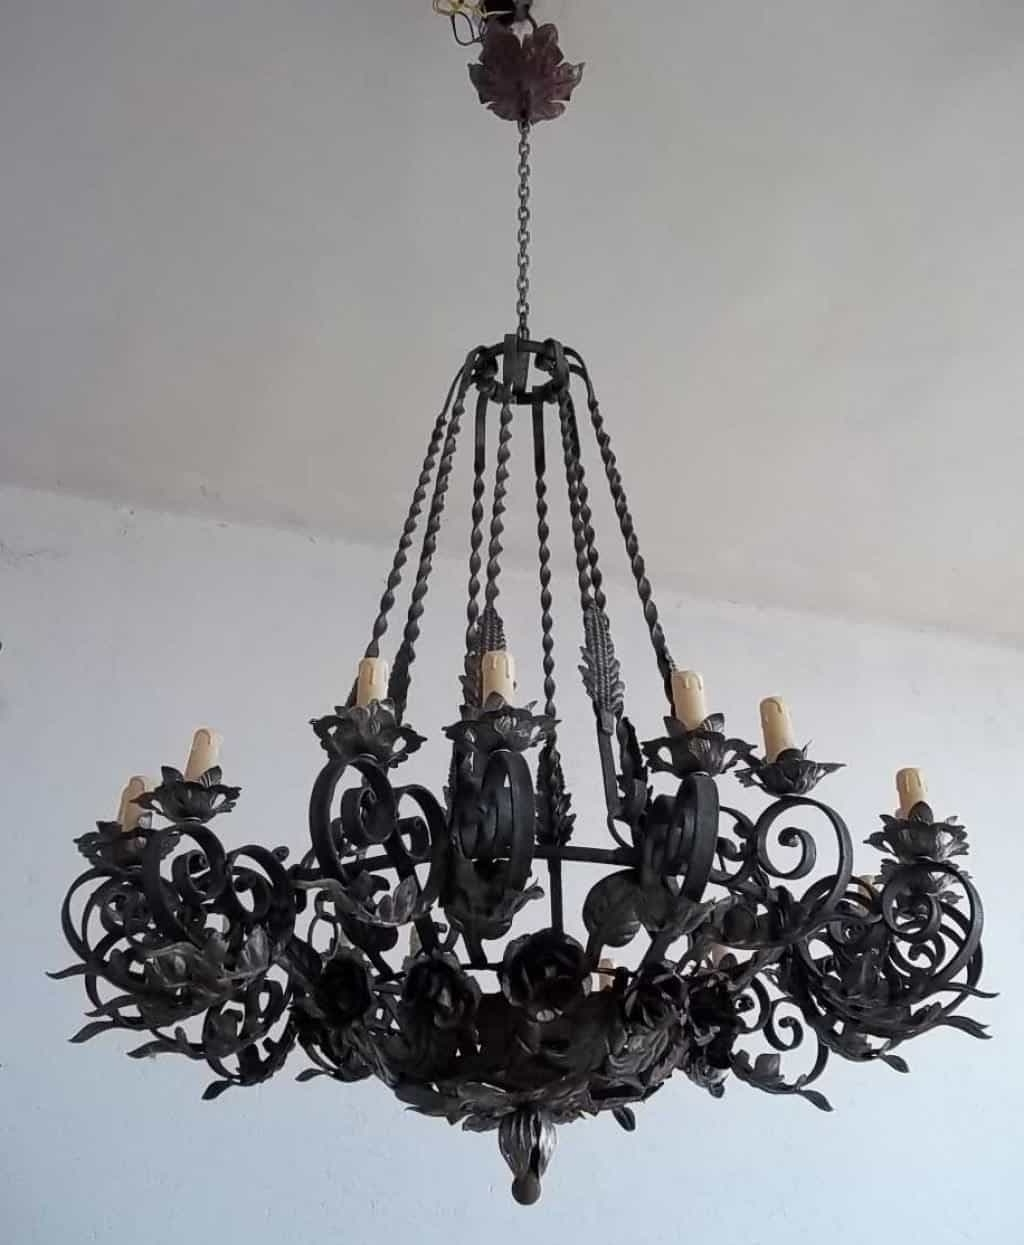 2018 Black Vintage Wrought Iron Chandelier Hung In The White Ceiling With Vintage Wrought Iron Chandelier (View 1 of 15)